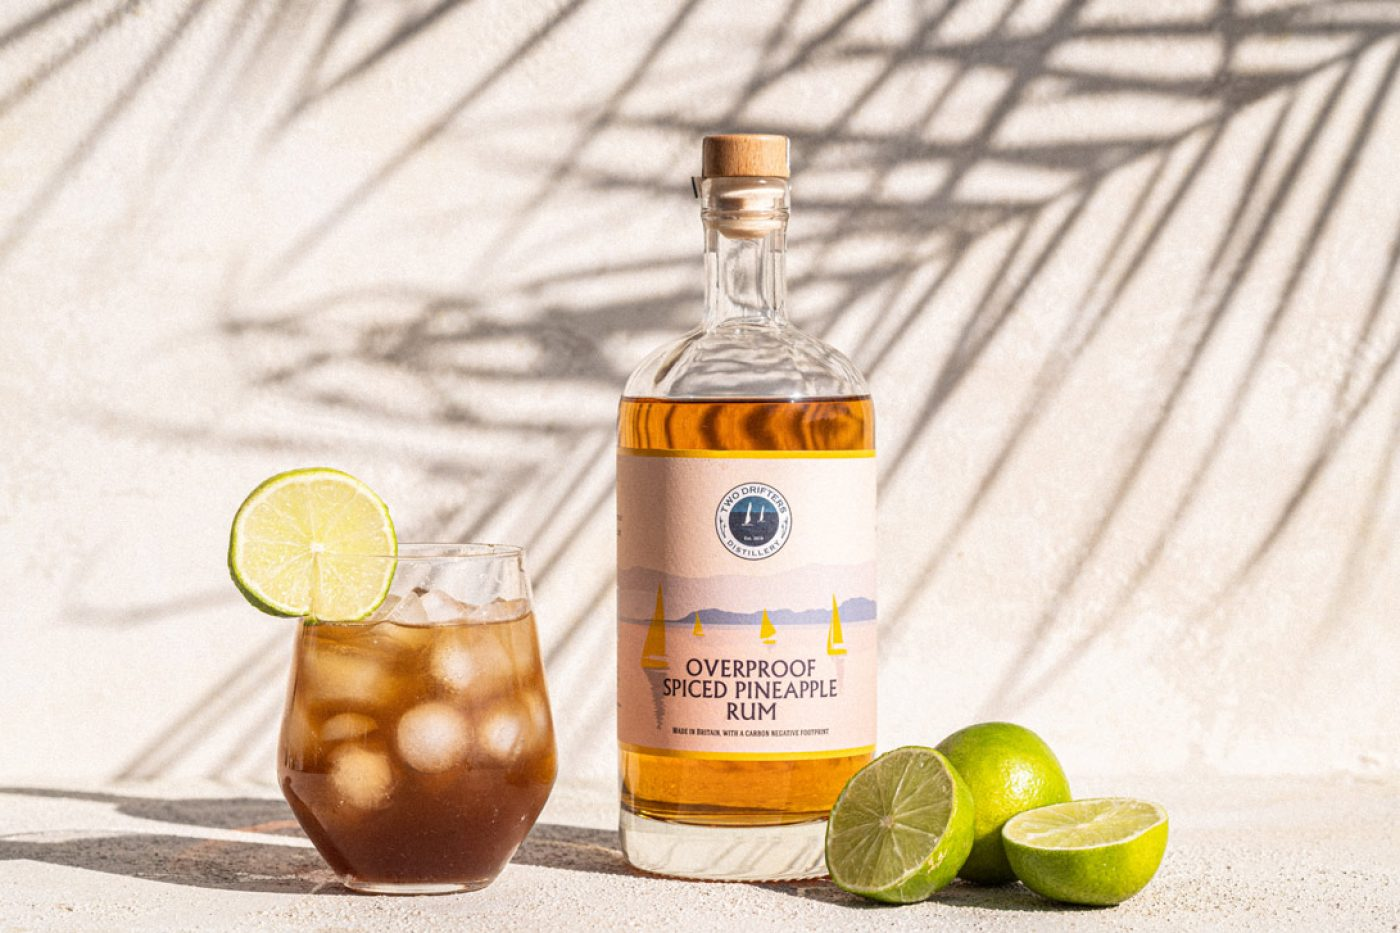 Bottle of Two Drifters pineapple rum with glass and limes